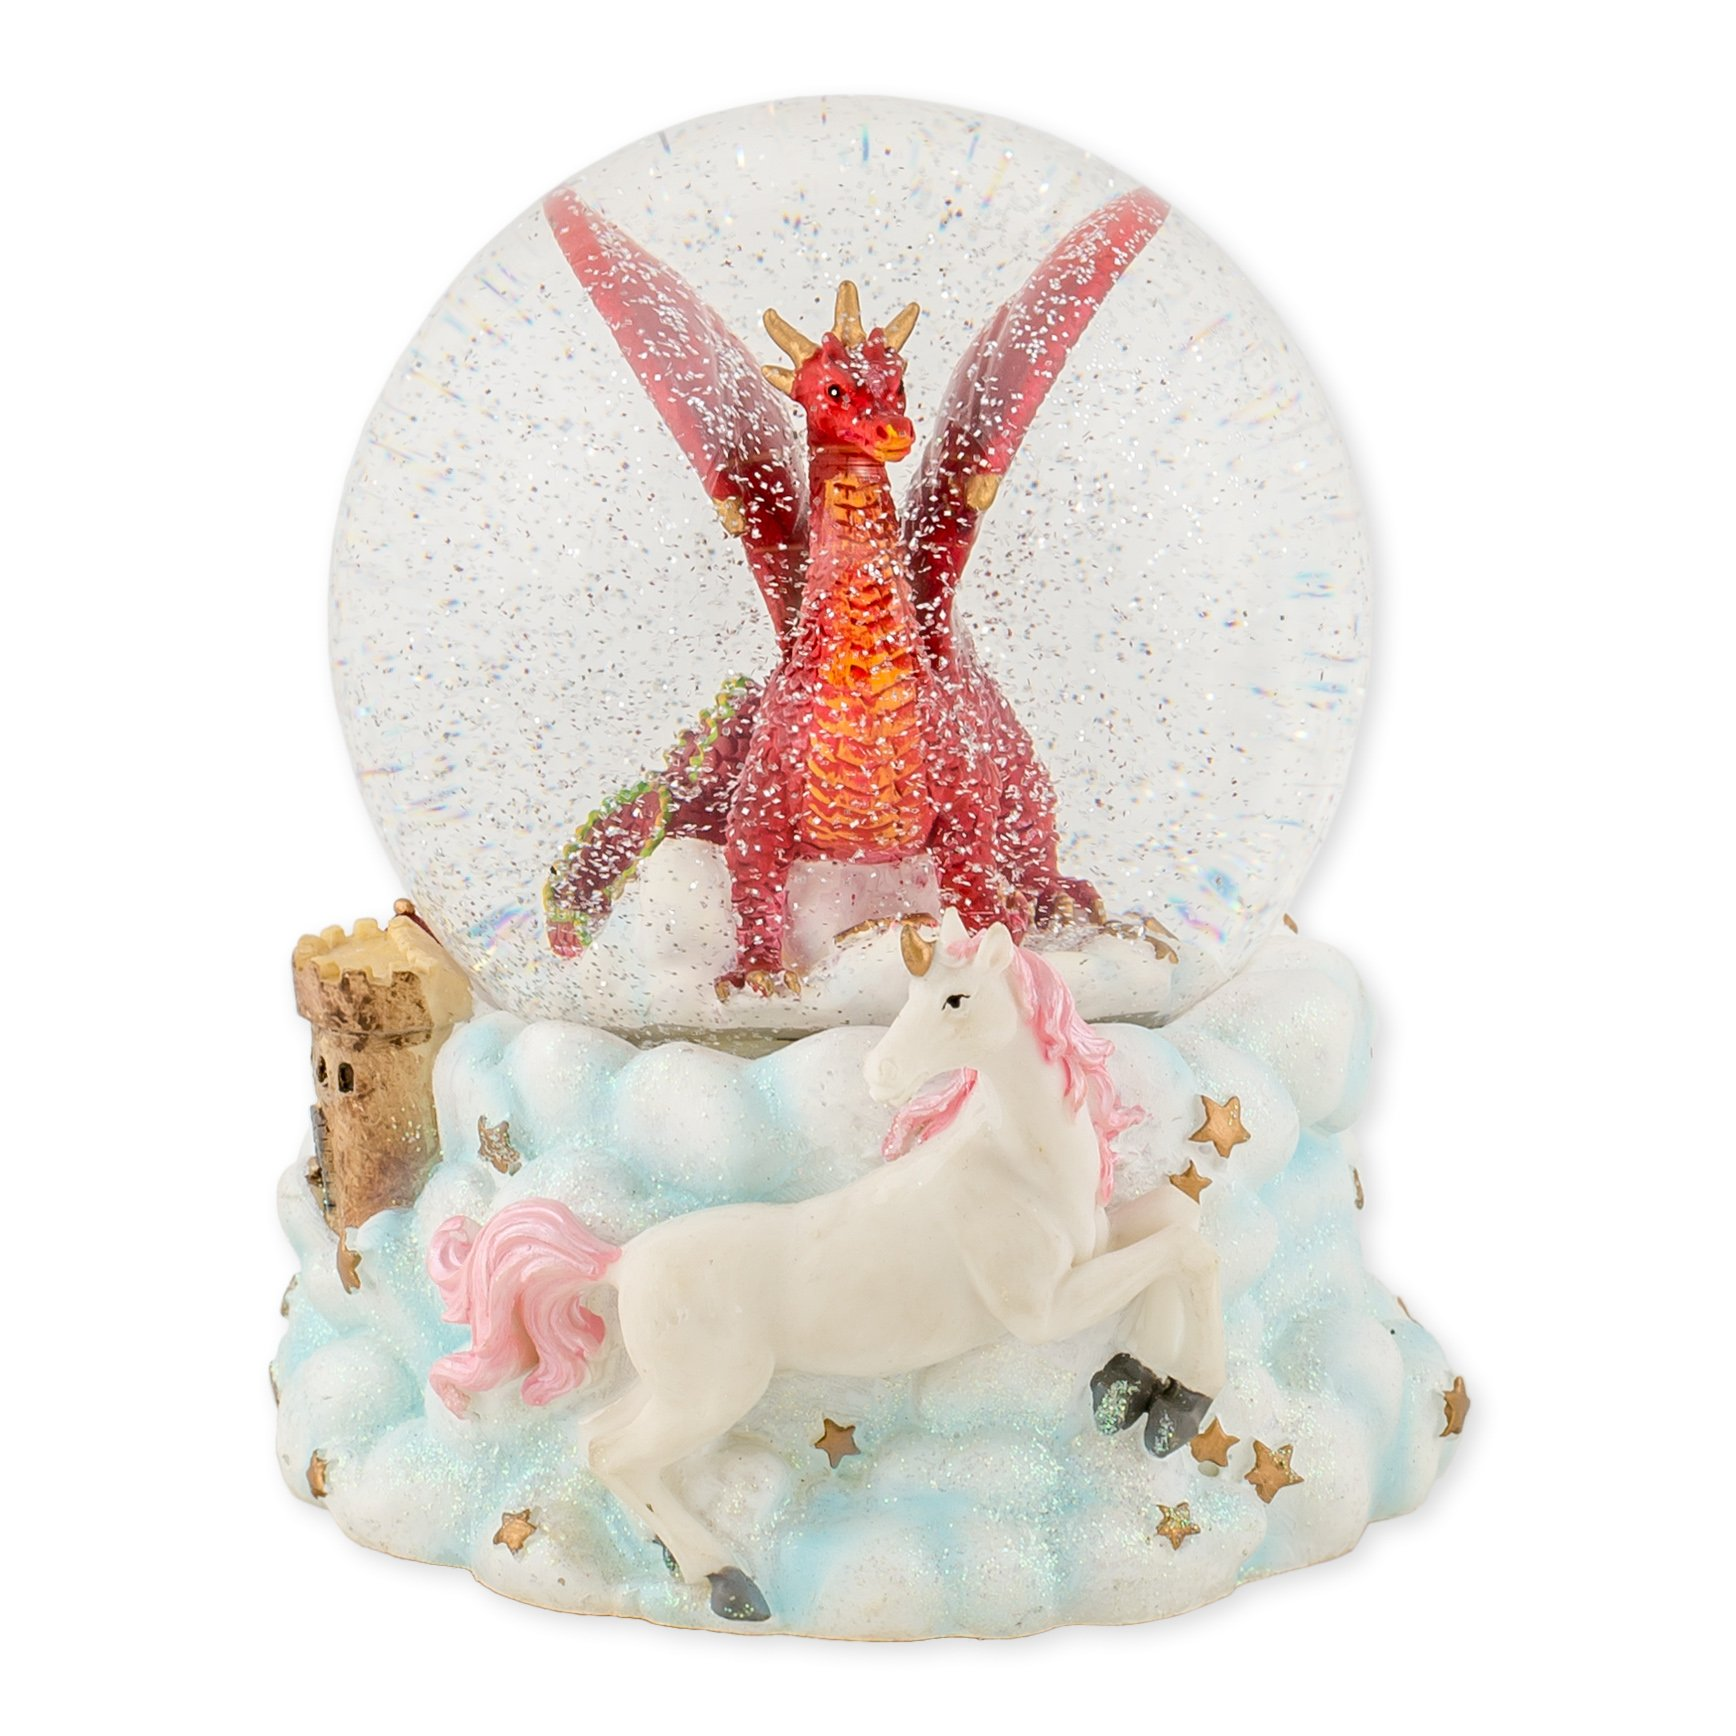 Red Dragon with Unicorn 100mm Resin Glitter Water Globe Plays Tune Jupiter Opus No. 4